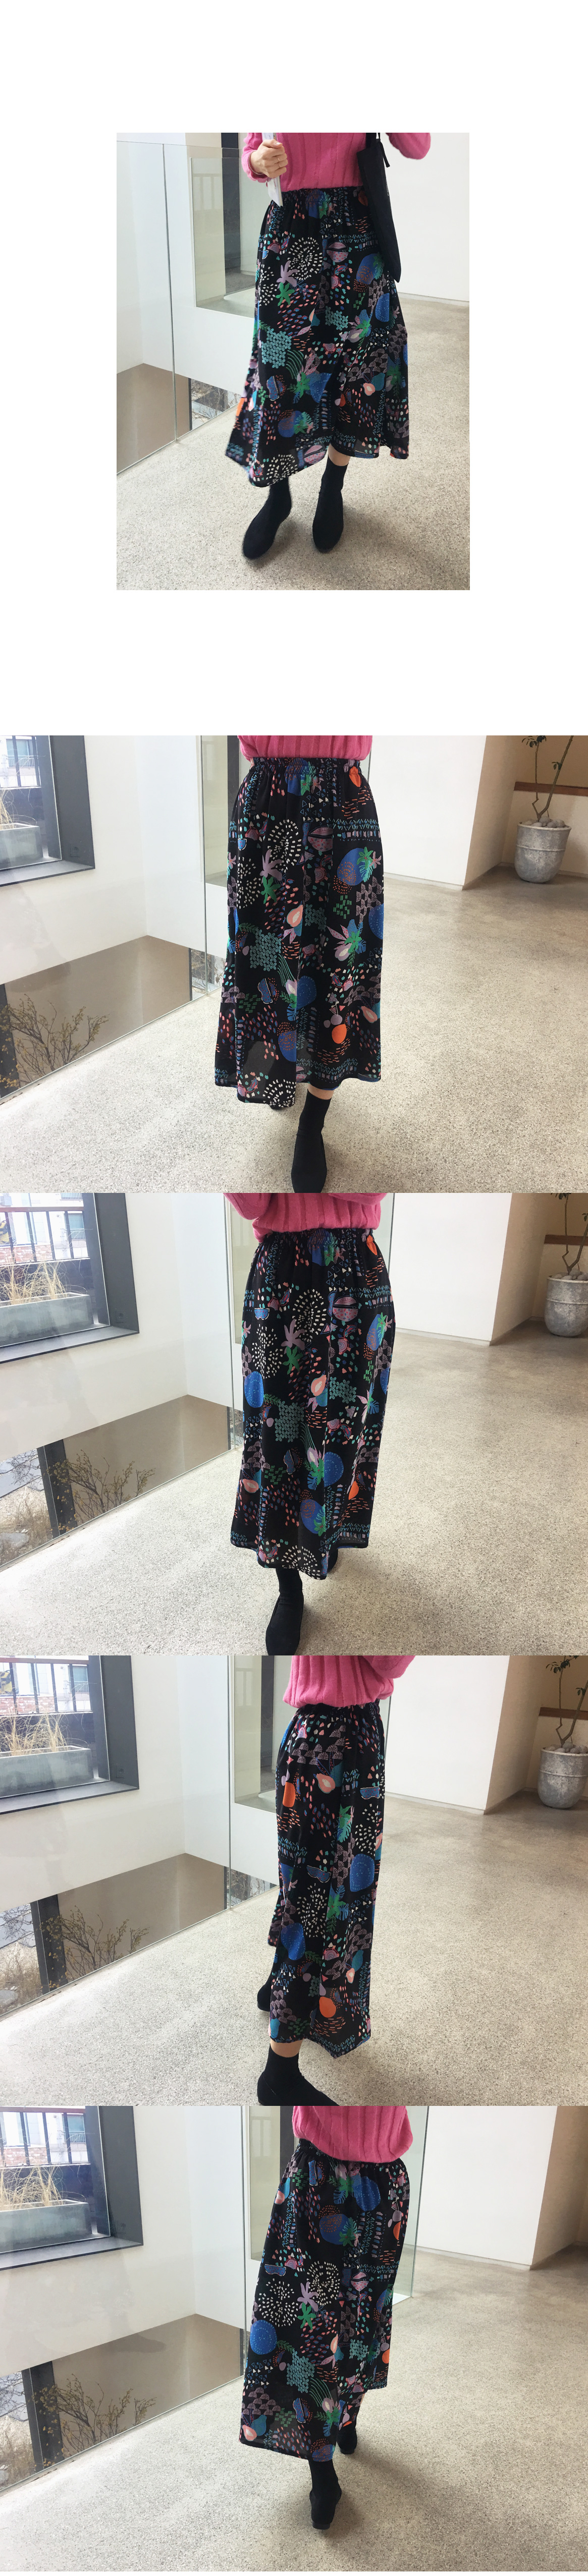 Picture country skirt